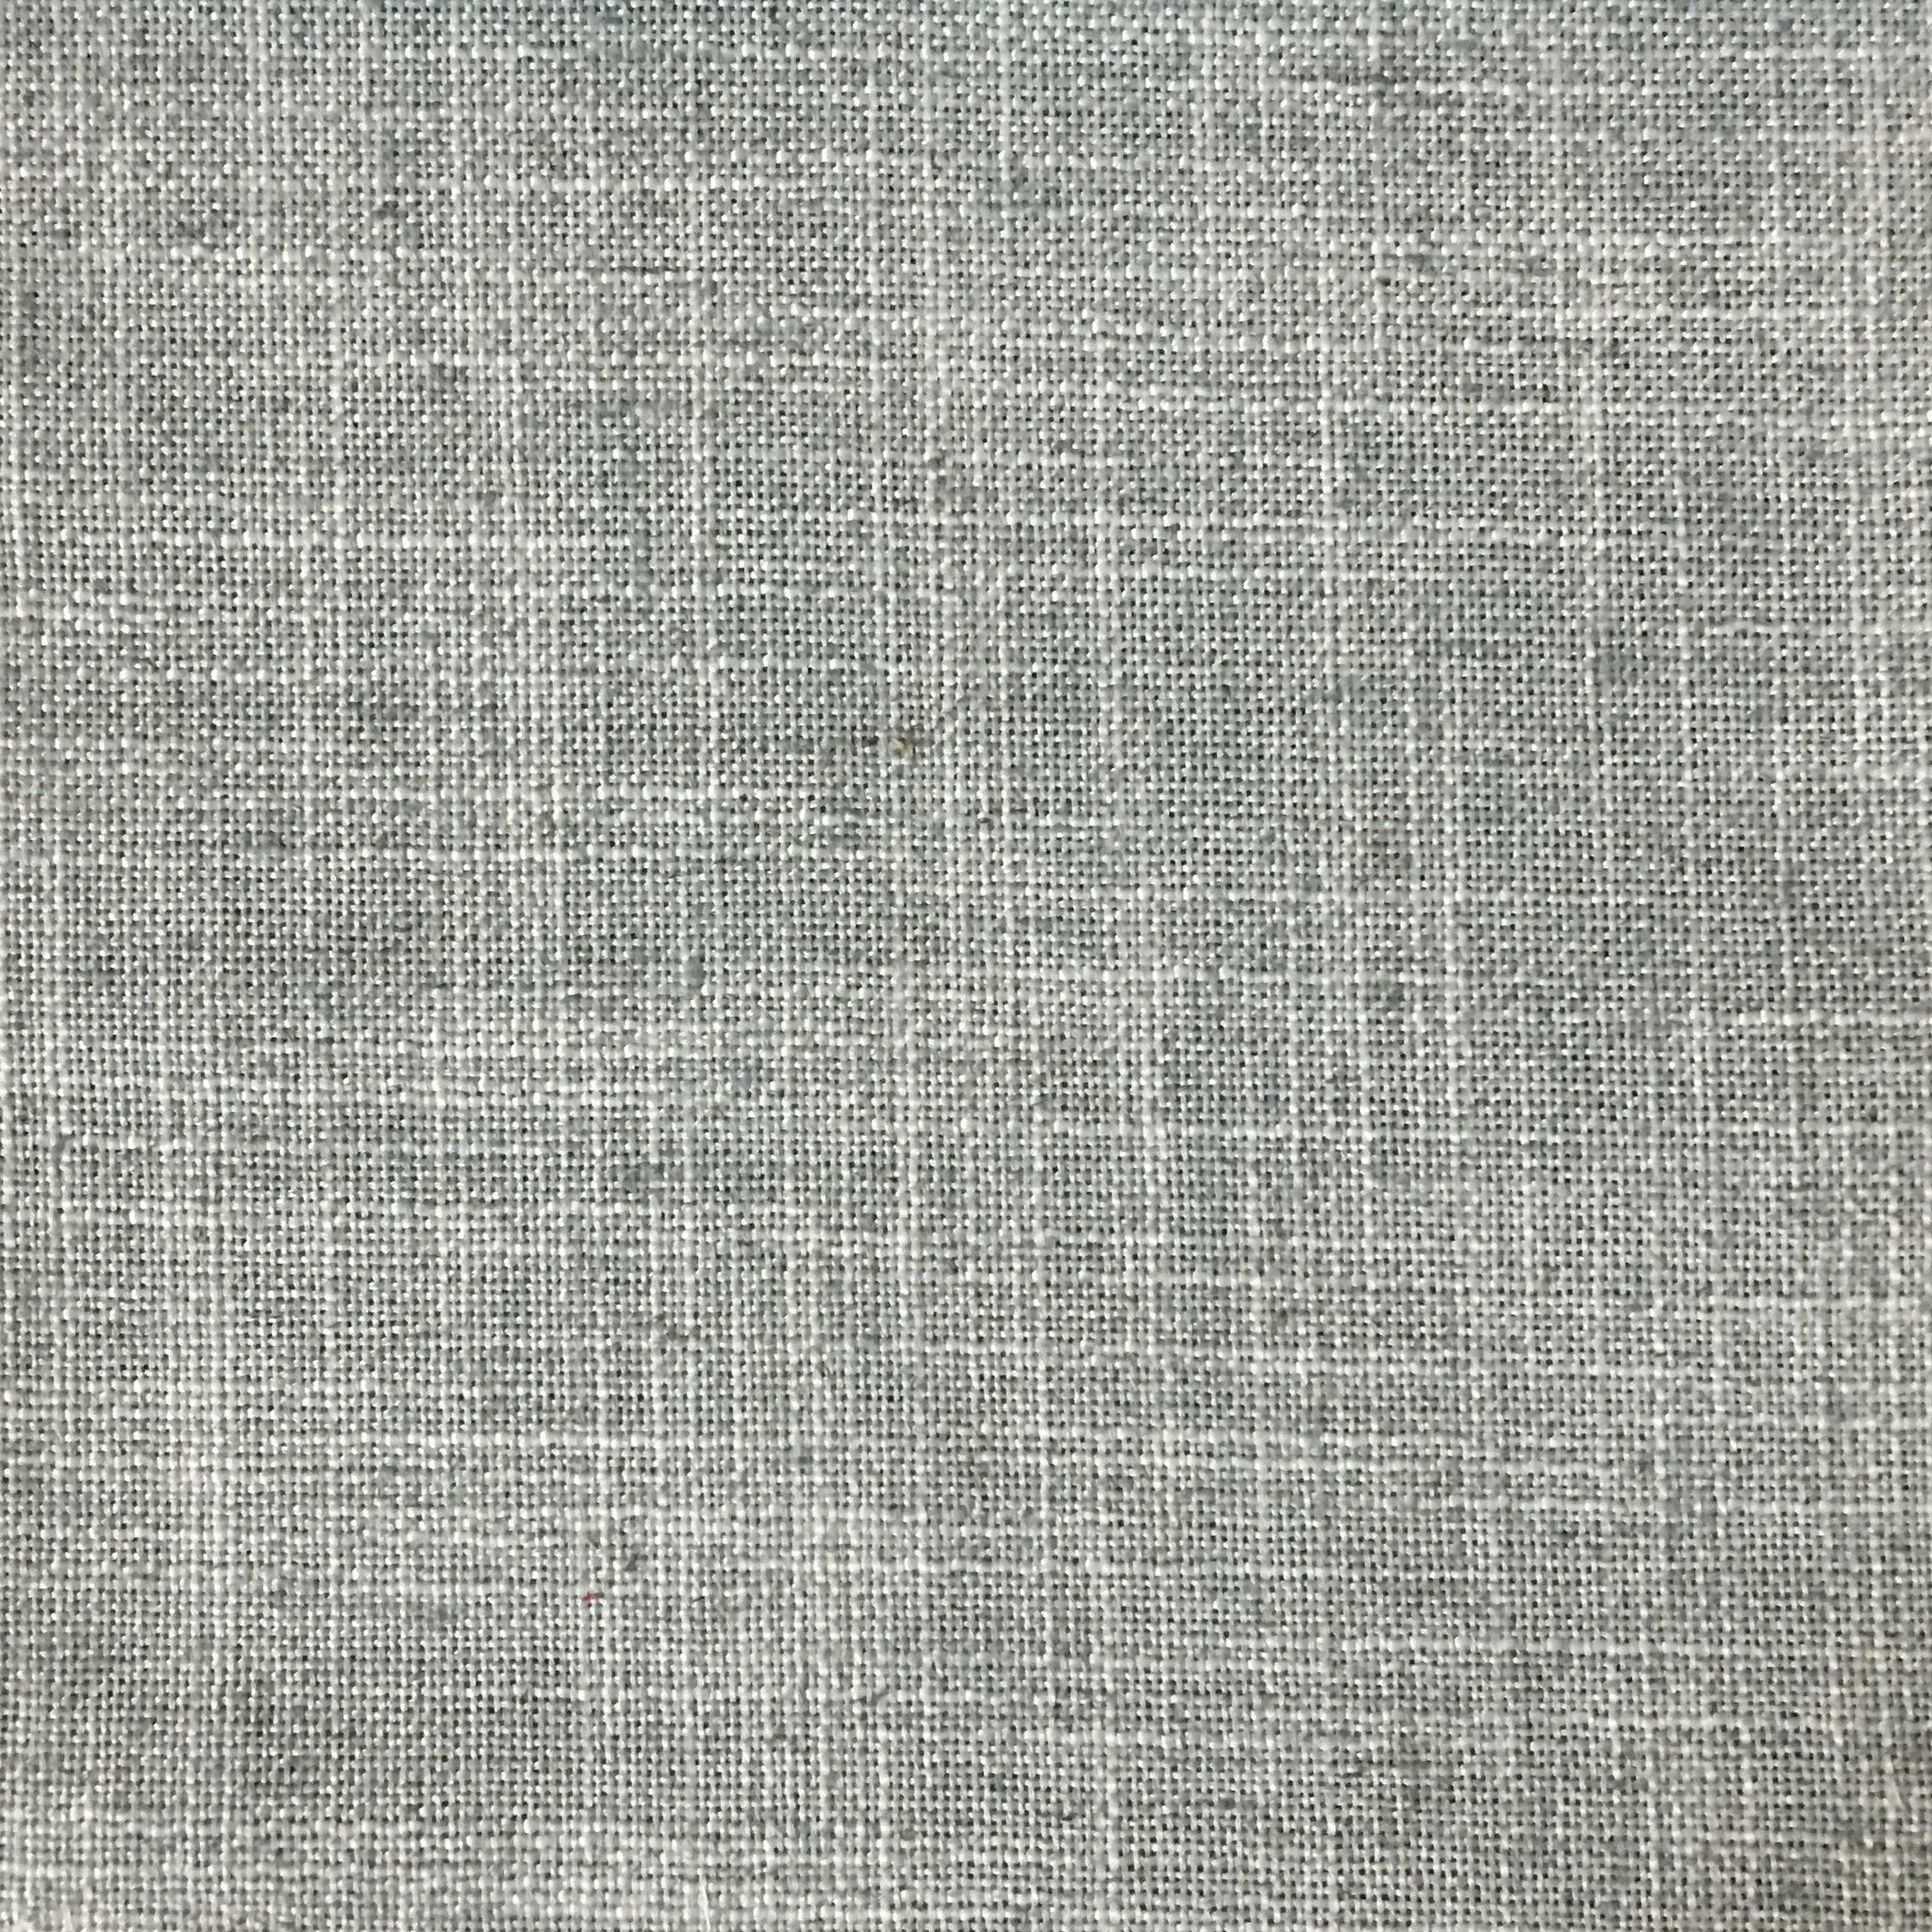 Linen Polyester Blend Burlap Upholstery Fabric By